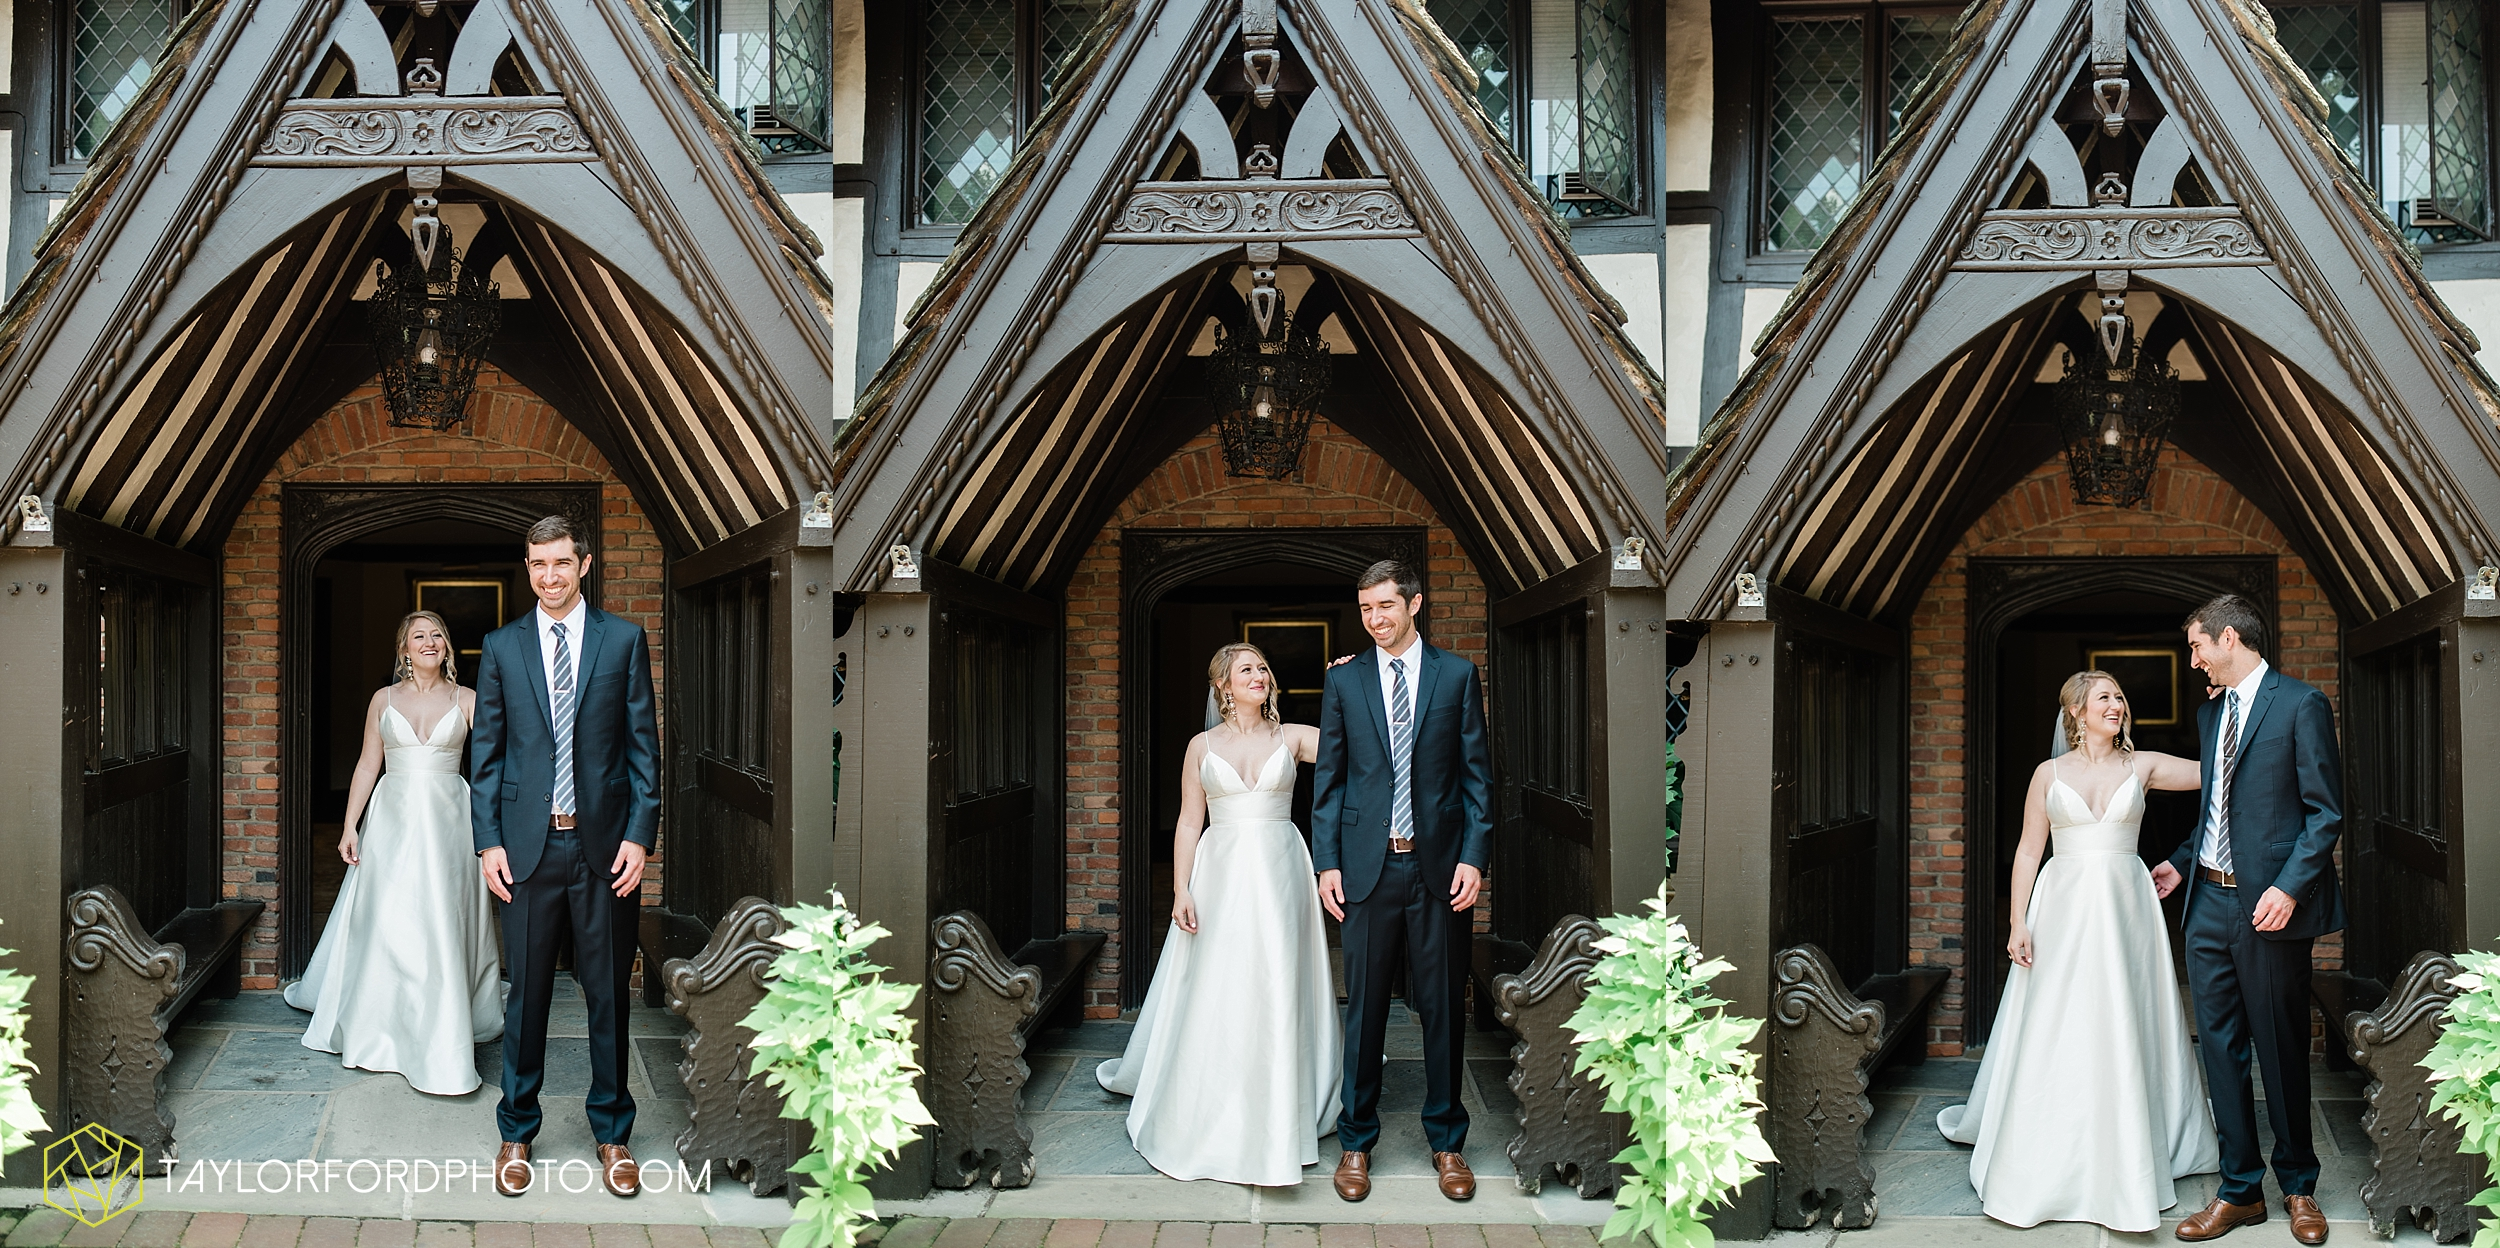 margot-may-evan-kohler-club-at-hillbrook-cleveland-chagrin-falls-outdoor-wedding-bhldn-gardenview-flowers-toledo-photographer-taylor-ford-photographer_9488.jpg